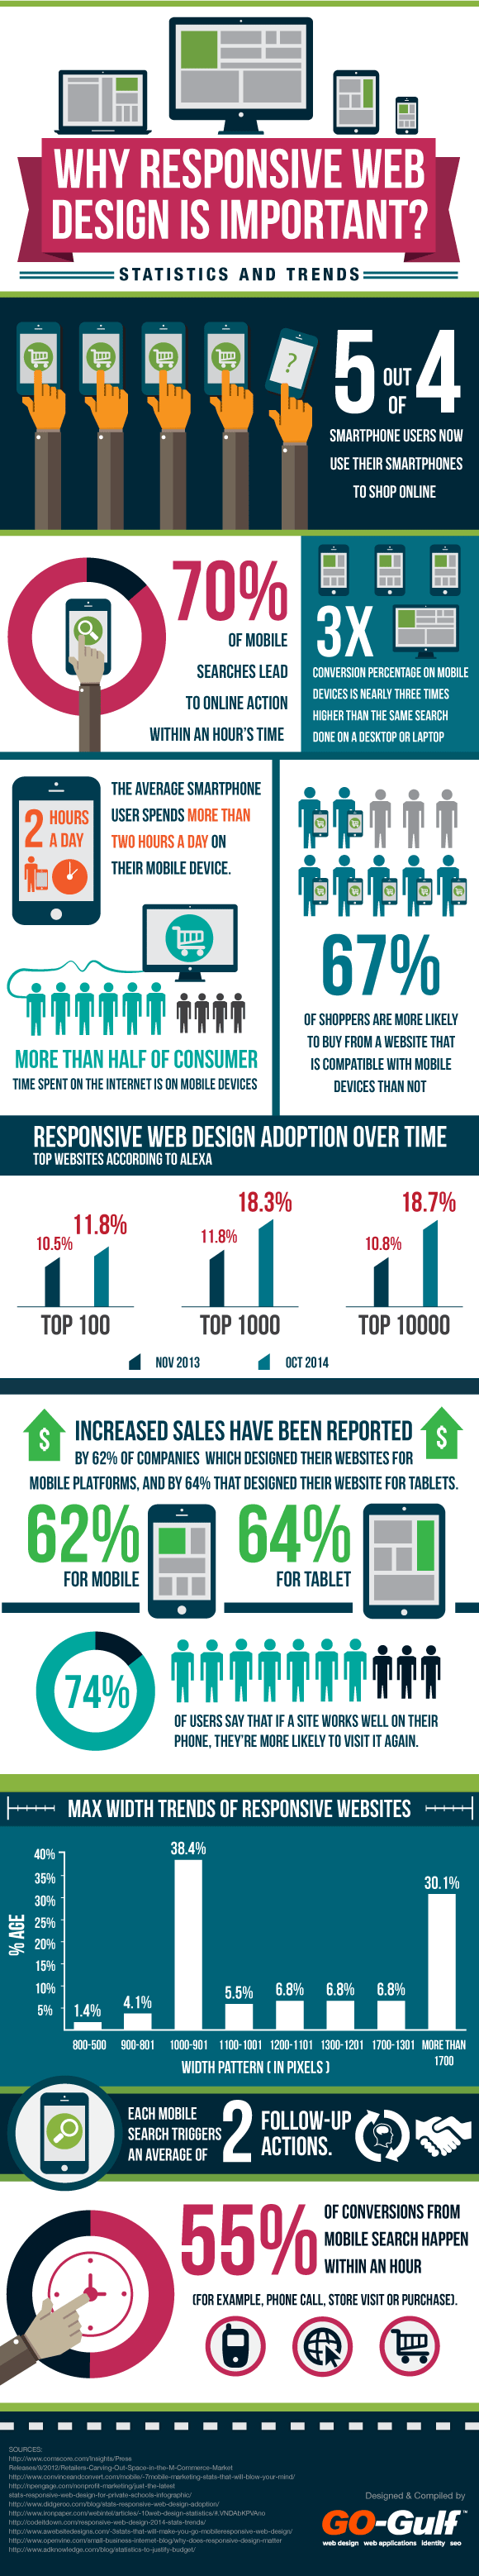 Keeping Up With Compatibility Why Responsive Web Design is Important